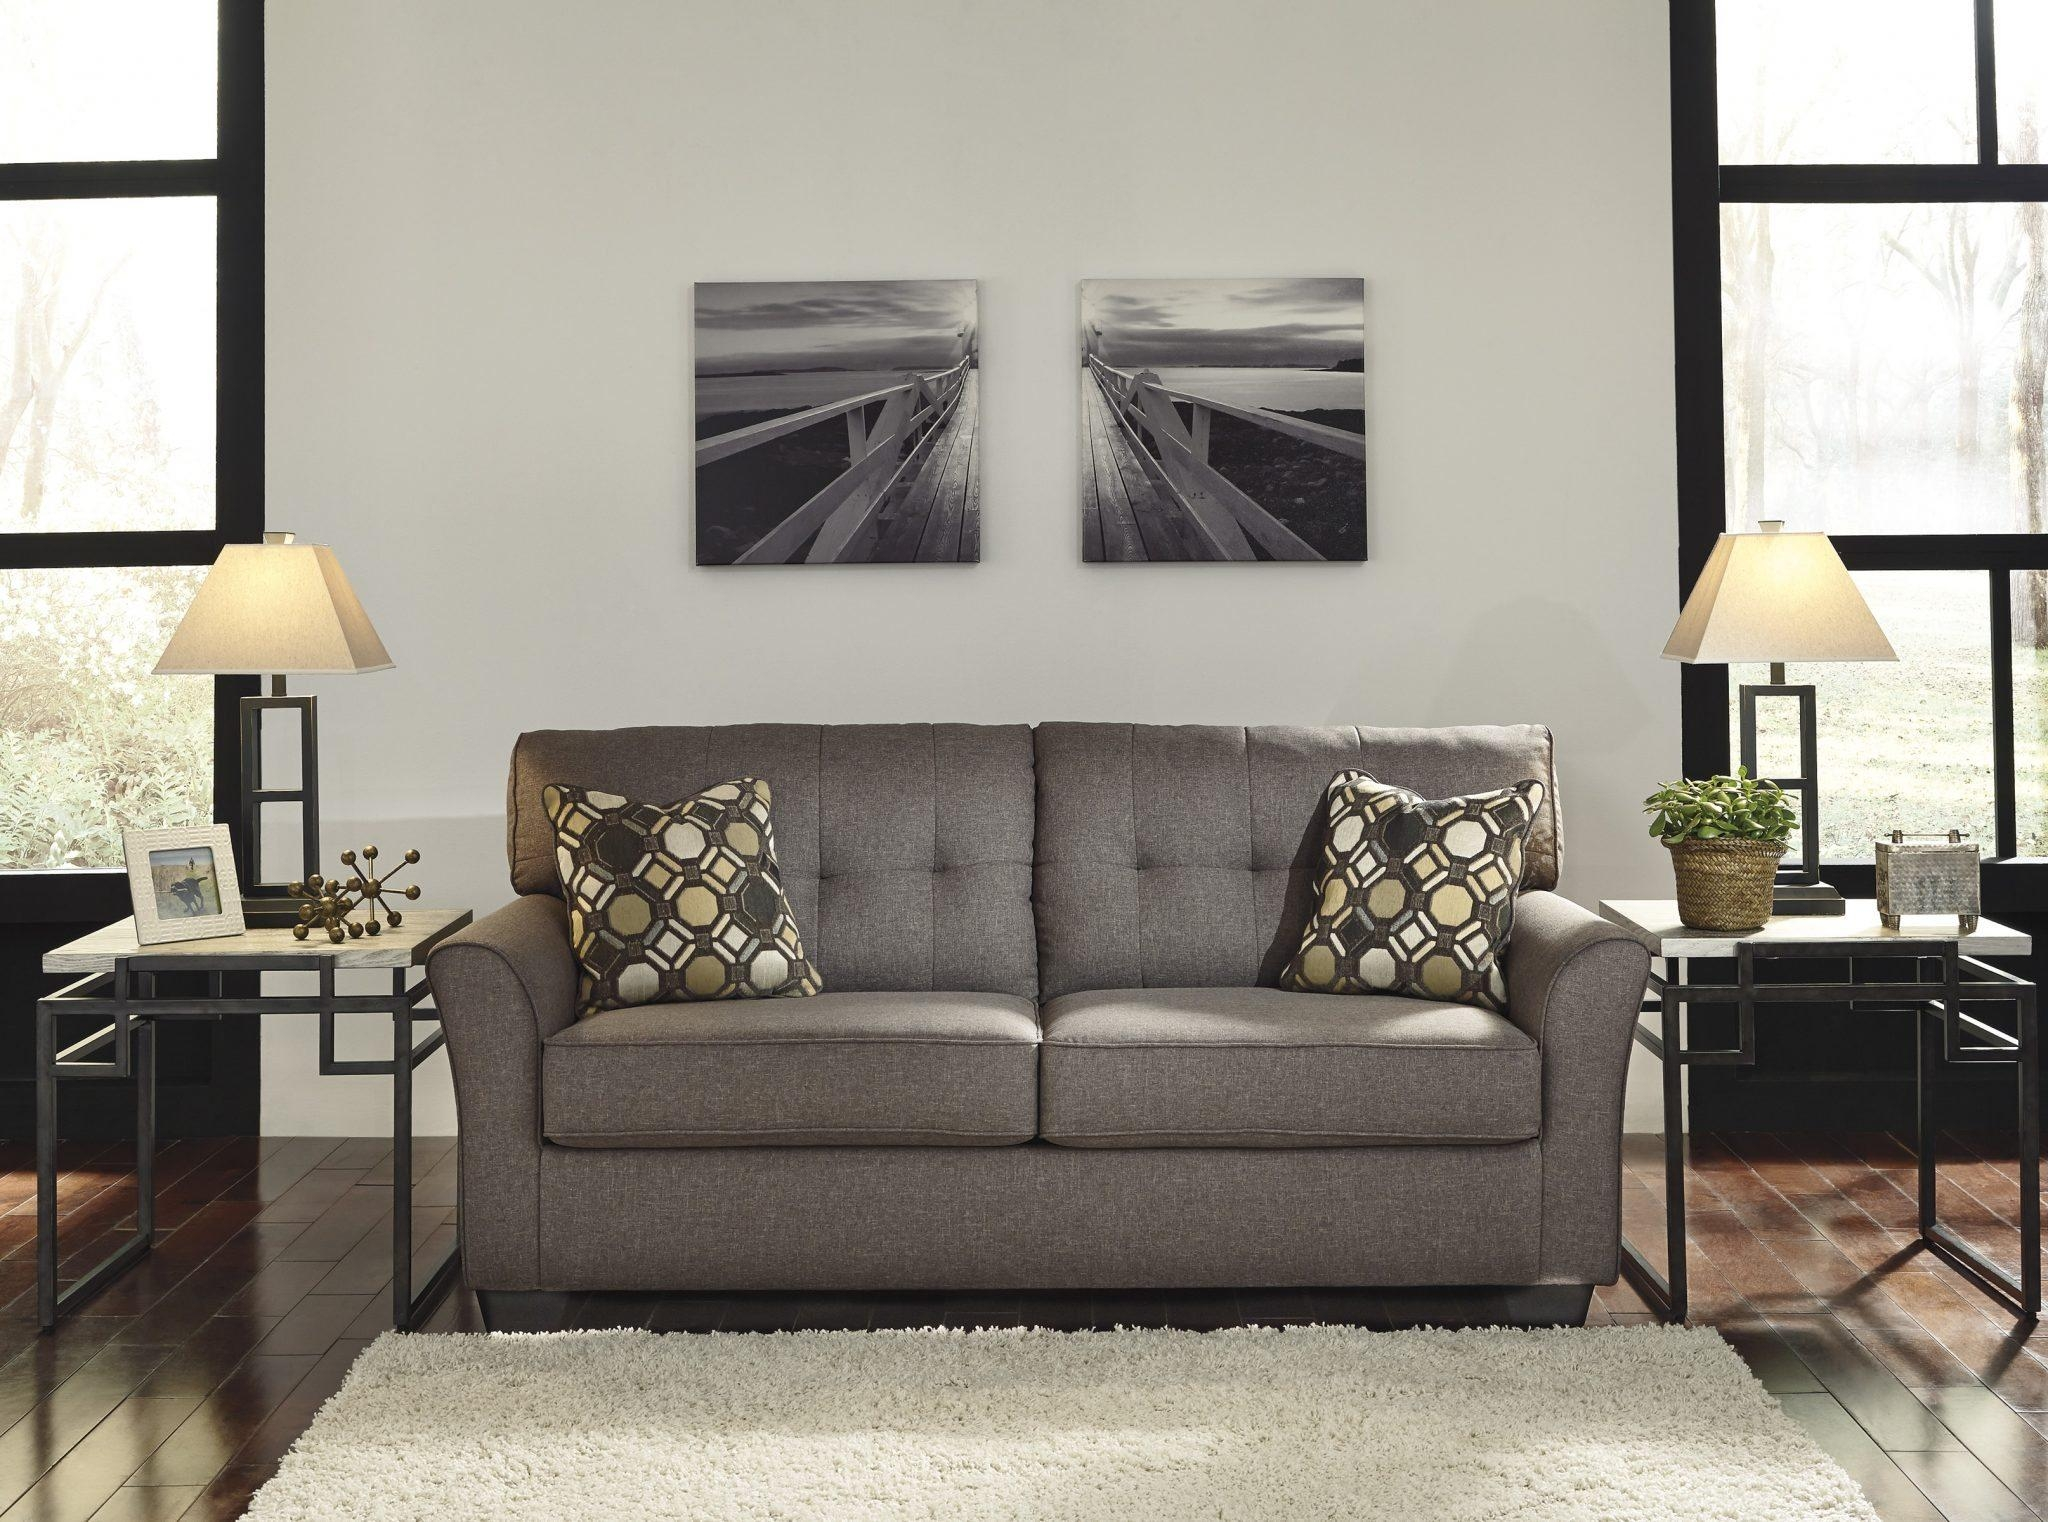 Best Furniture Mentor Oh: Furniture Store – Ashley Furniture Inside Ashley Tufted Sofa (View 14 of 20)